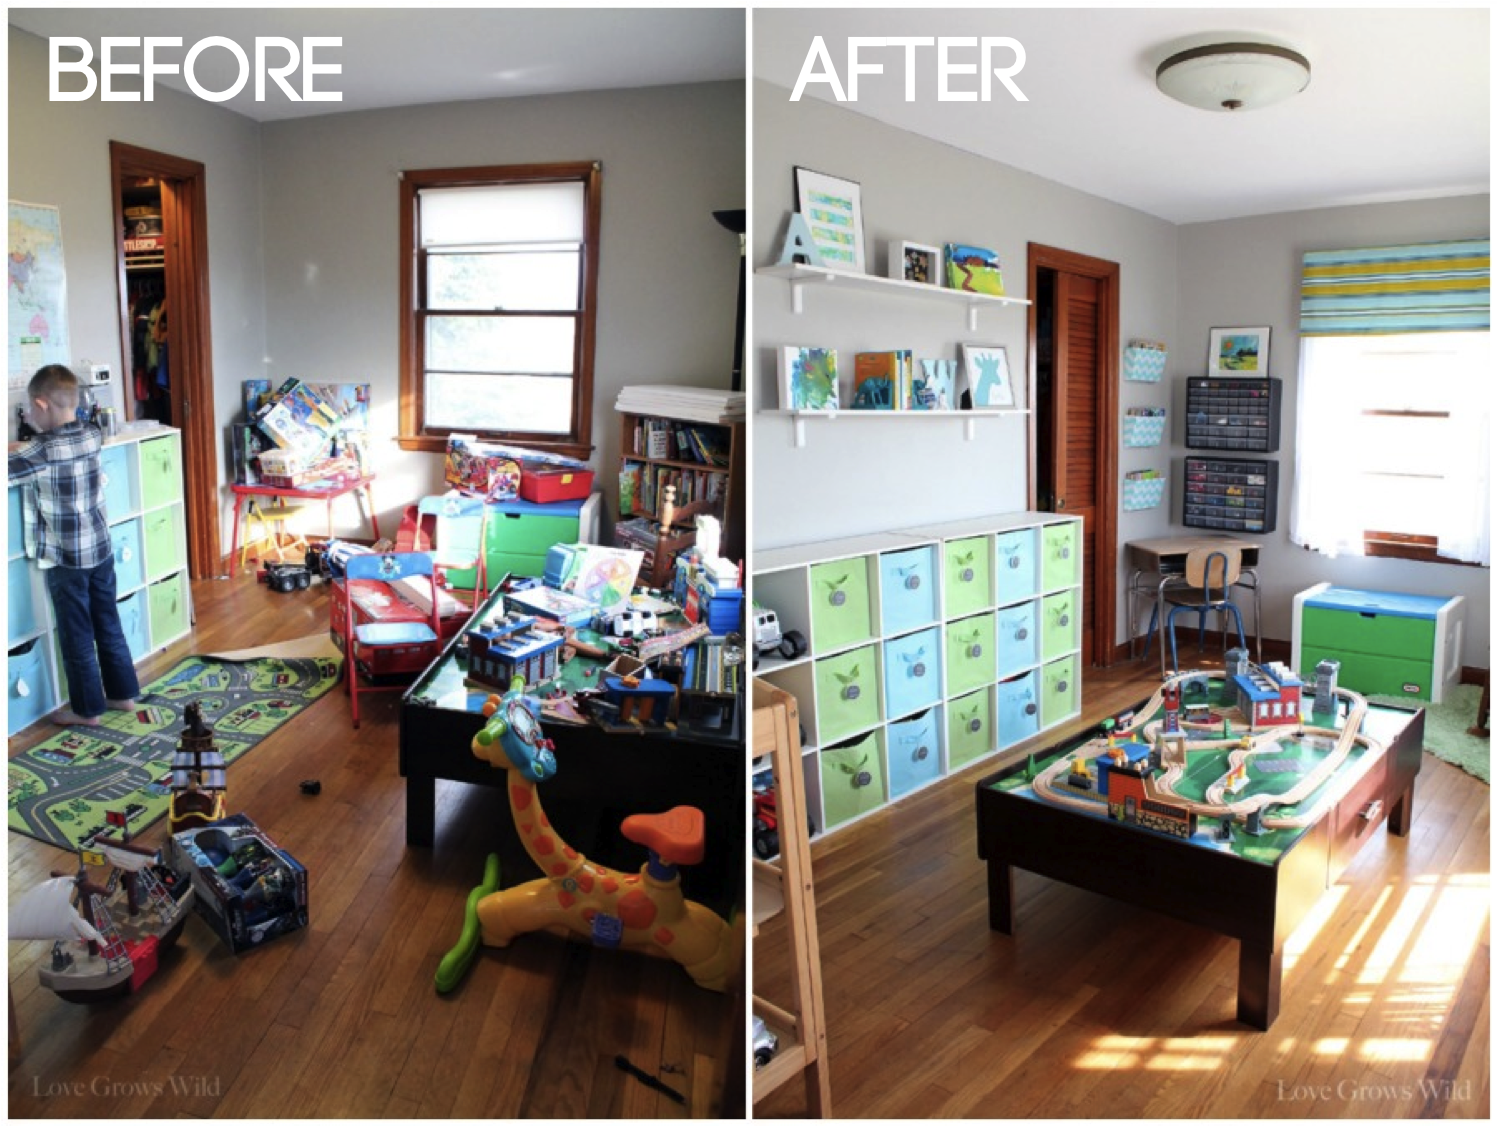 Fun Playroom Ideas Playroom Makeover Room Reveal Love Grows Wild